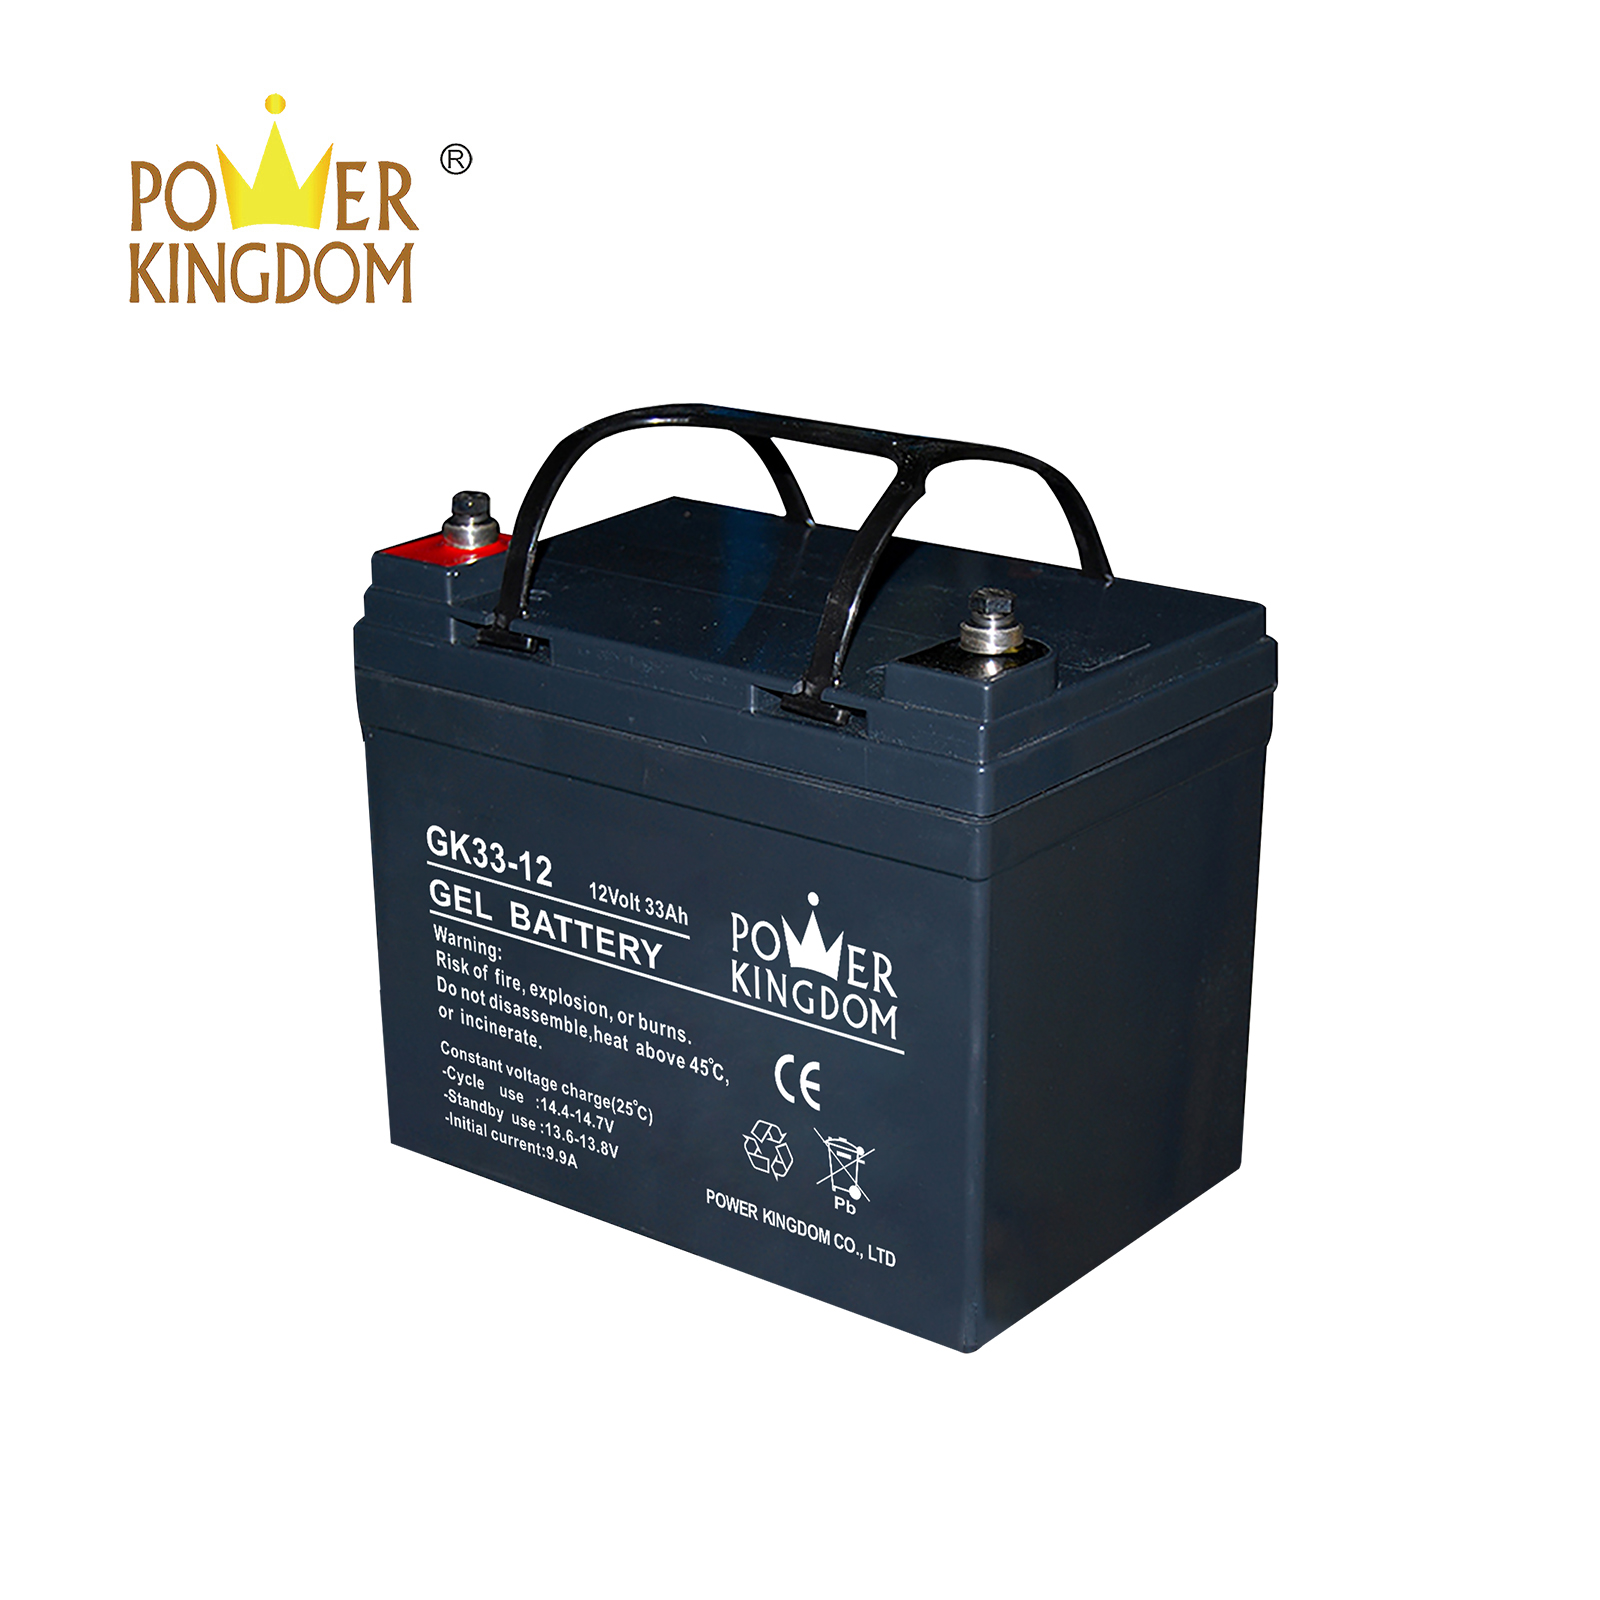 Power Kingdom Latest 2 volt sealed lead acid battery Supply solor system-2